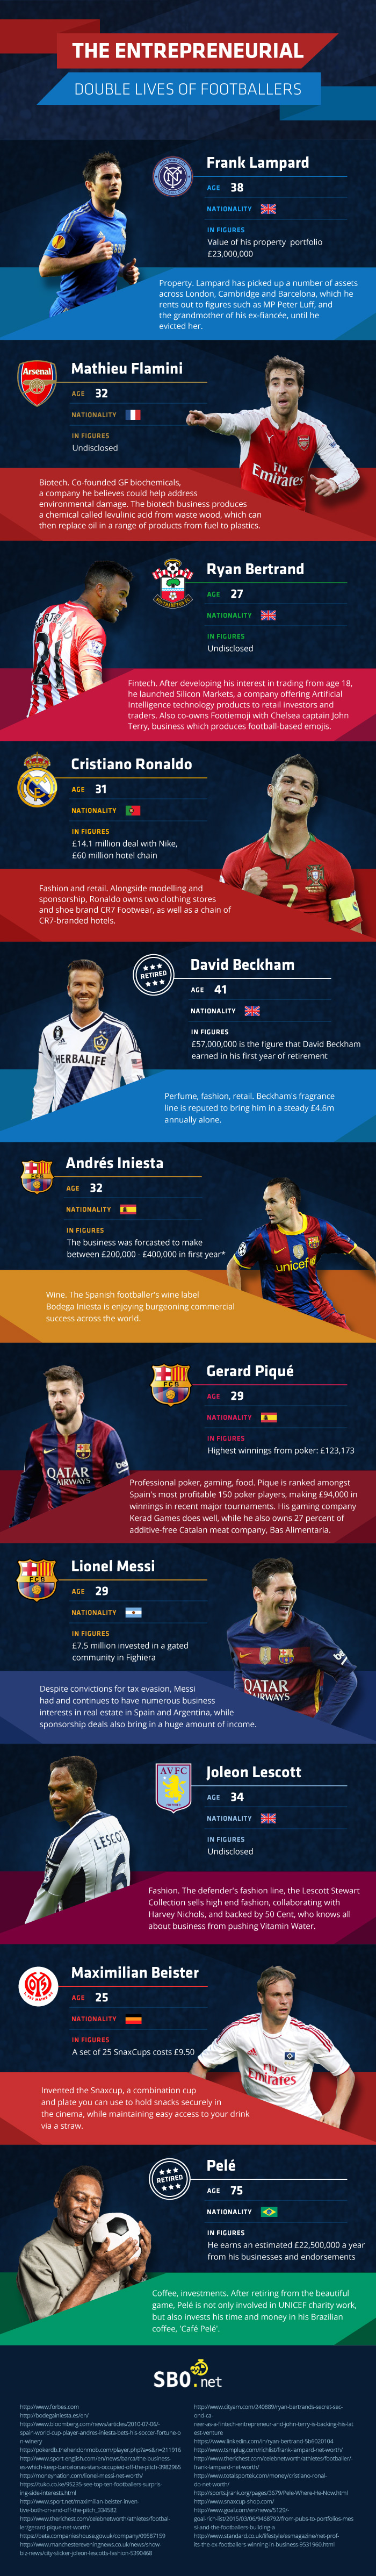 Footballers' business lives